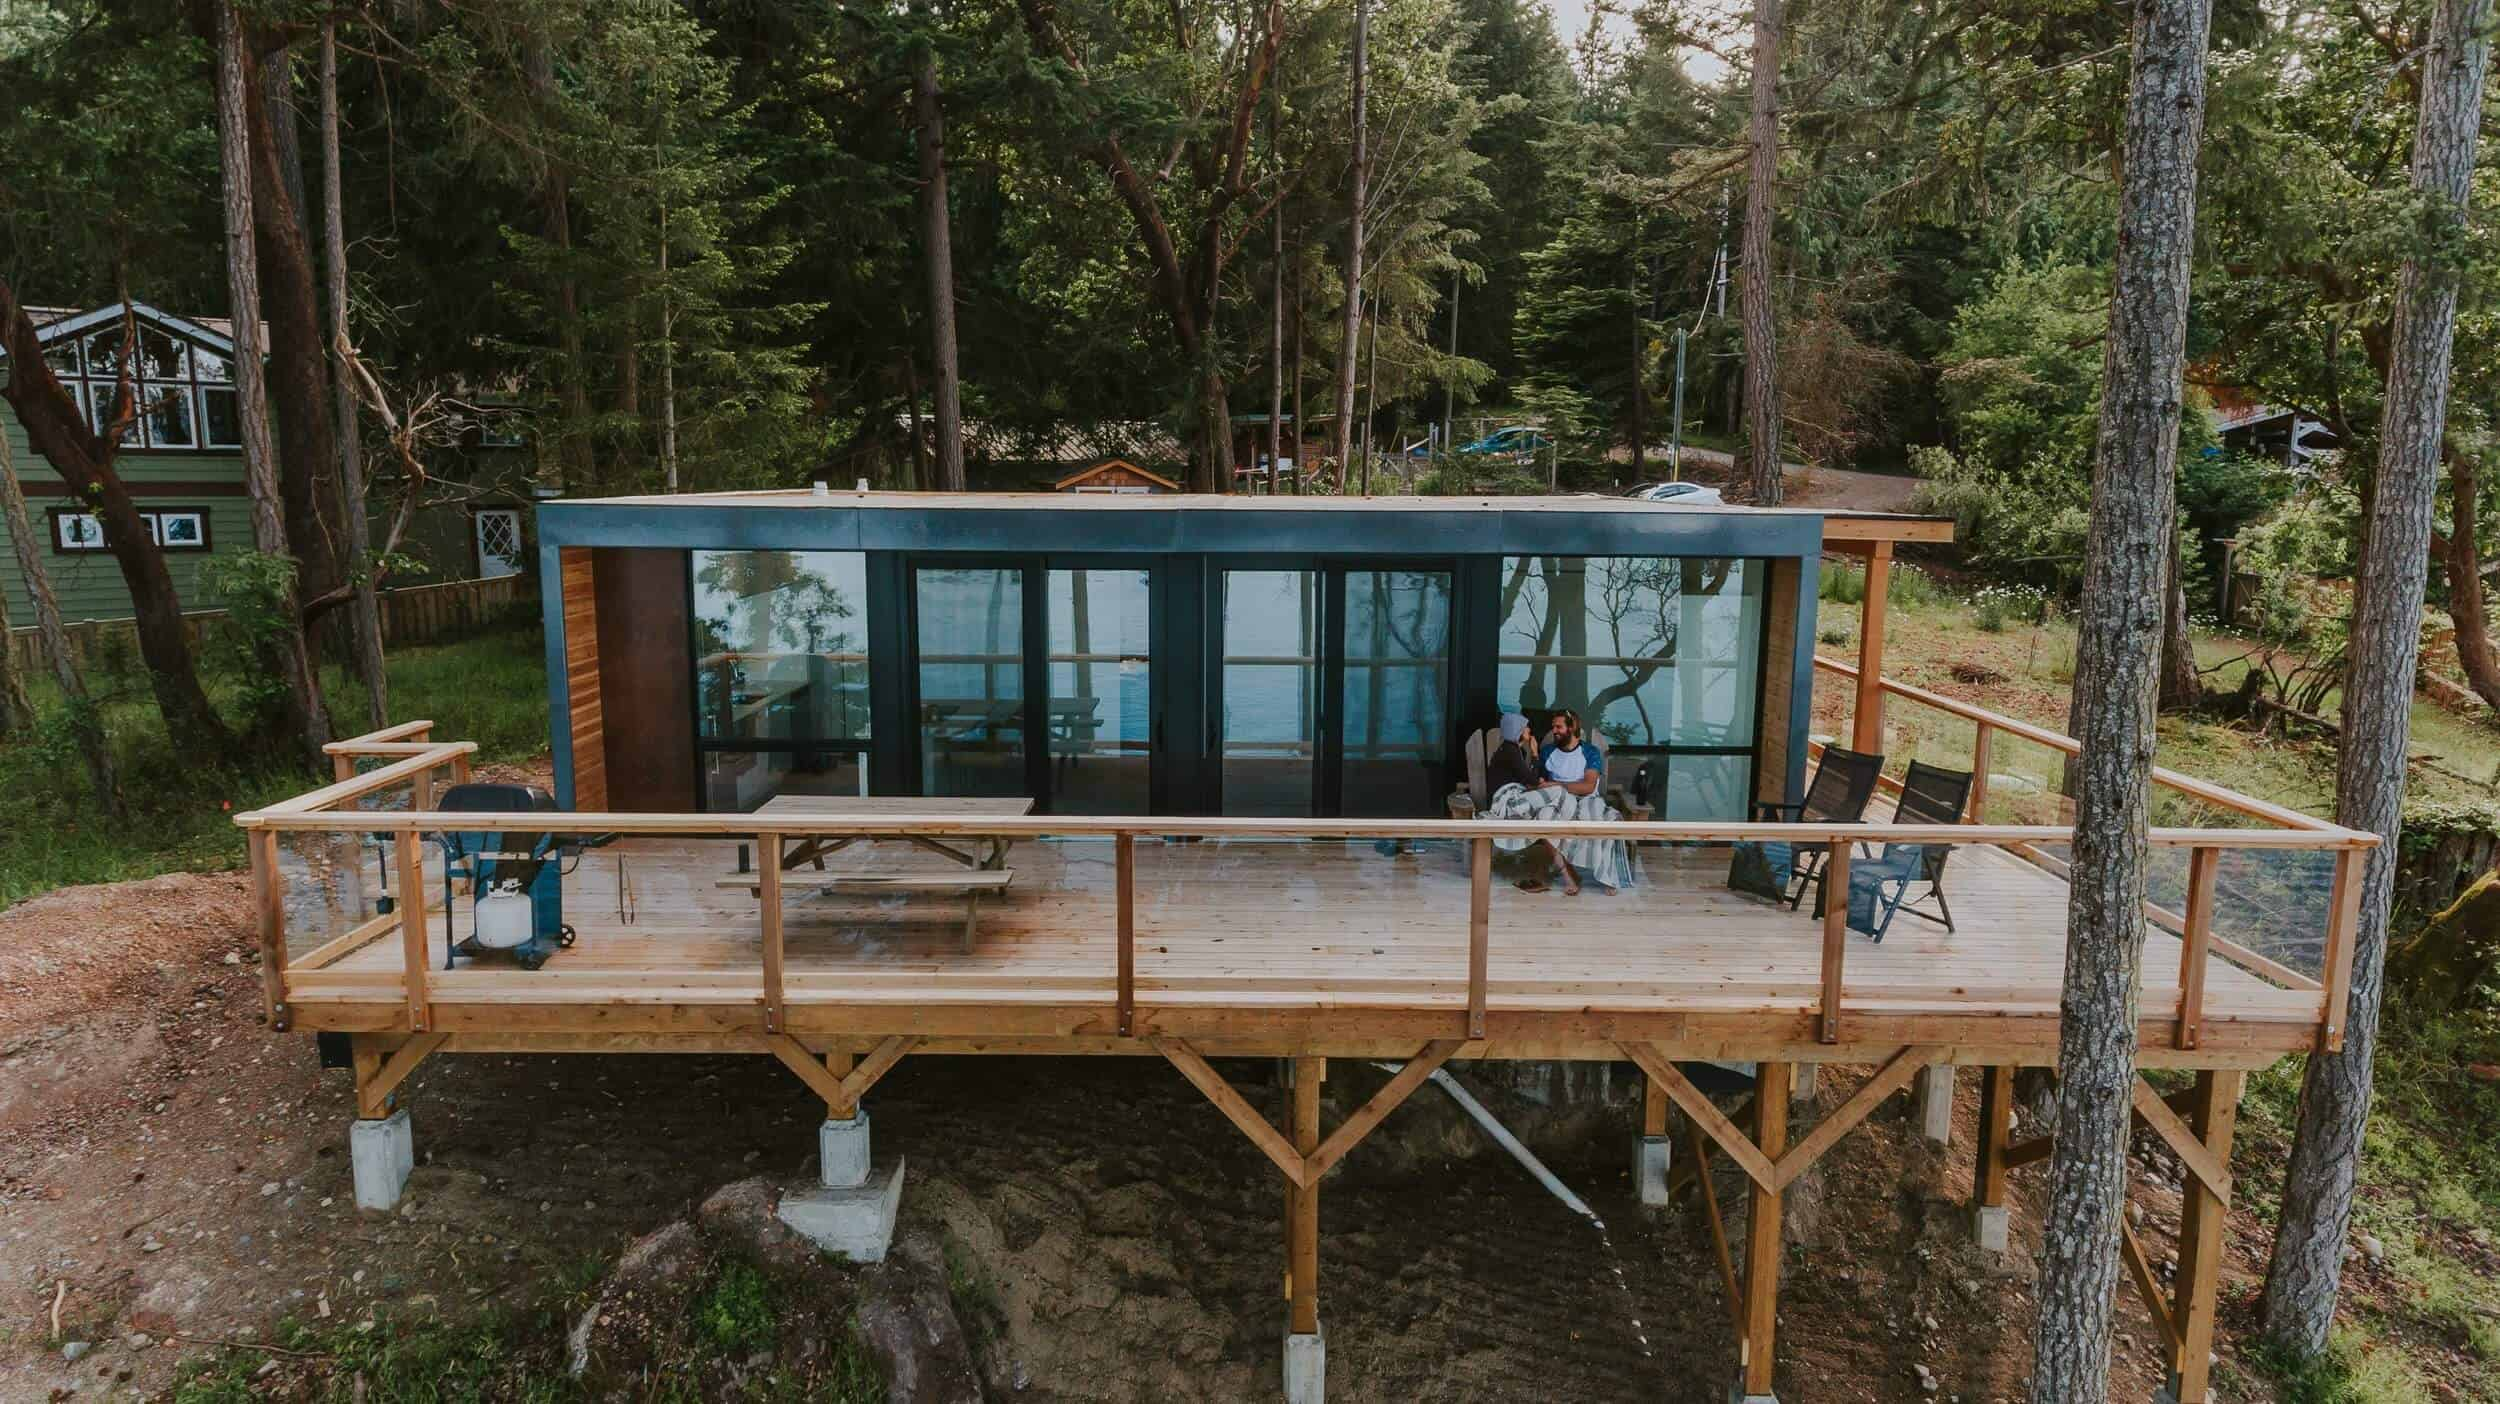 Shipping Container home perched on a forested hill